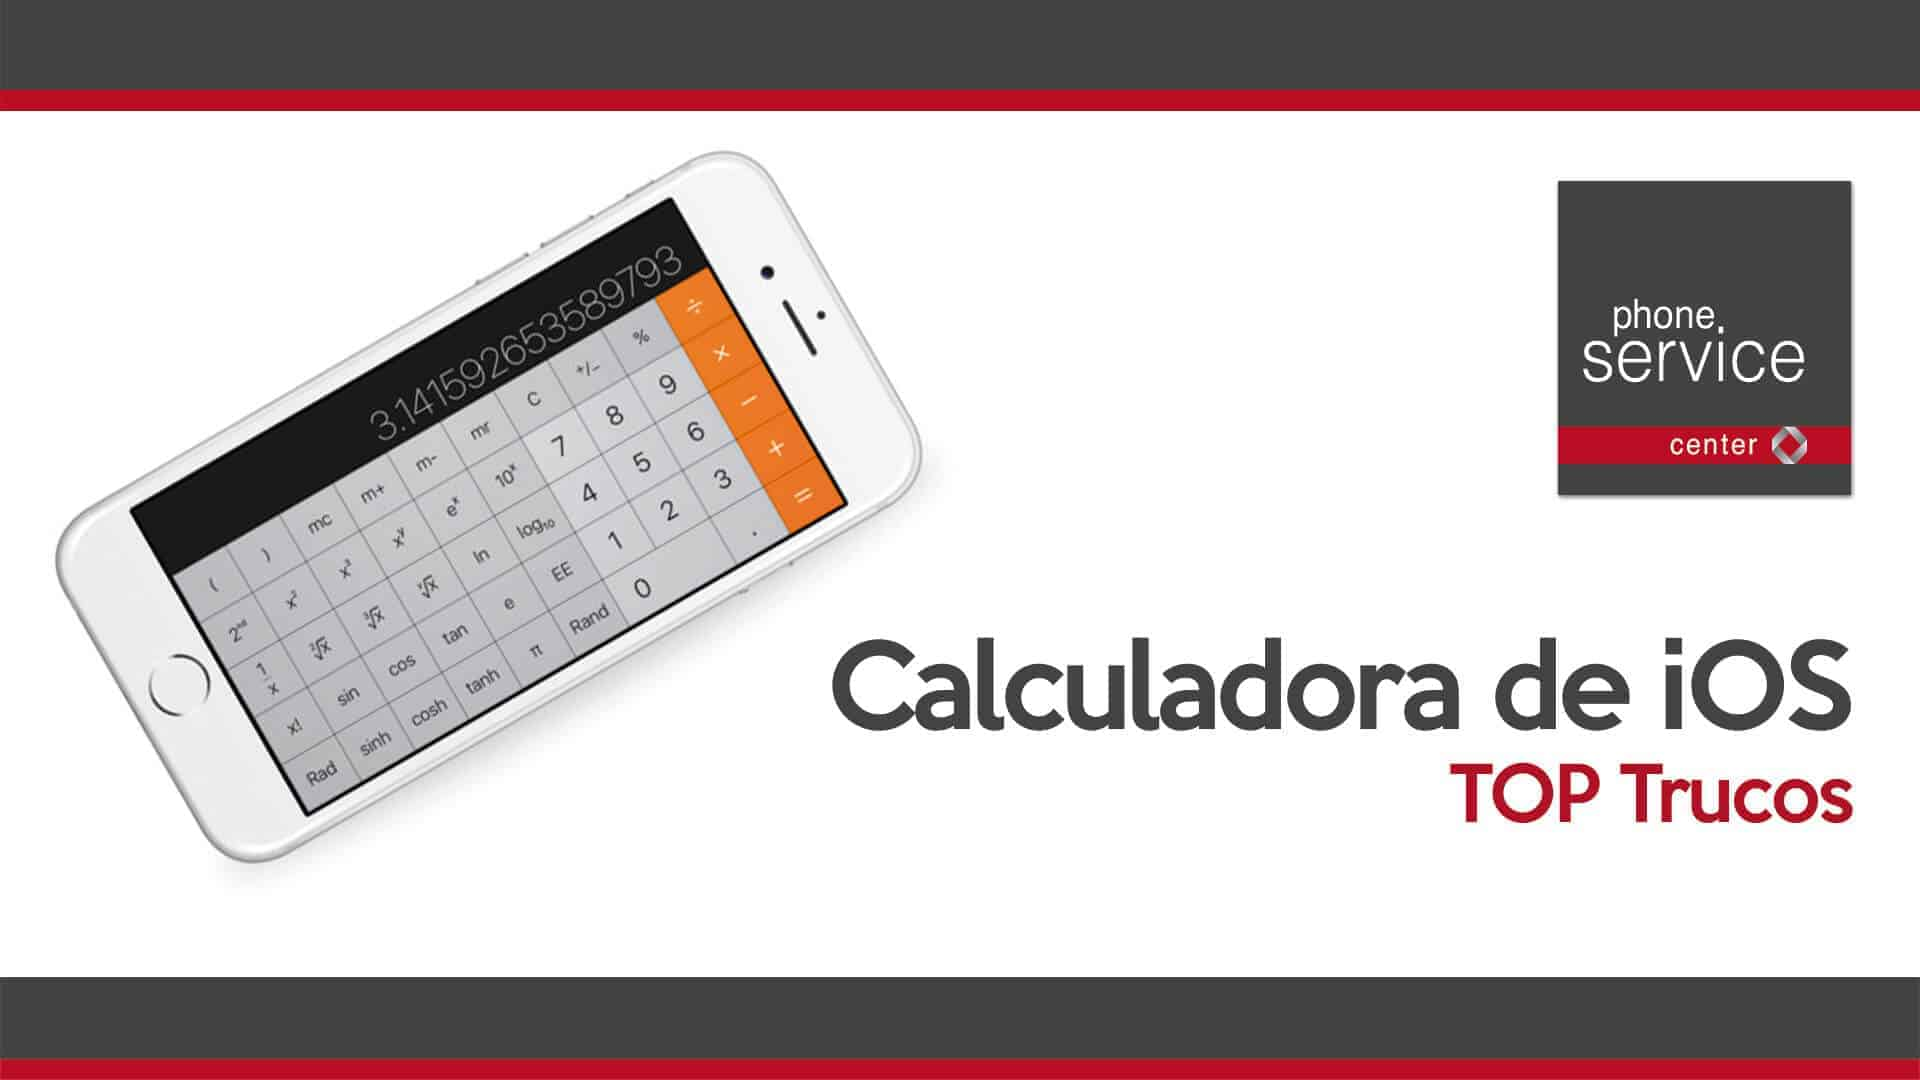 Calculadora de iOS Top trucos